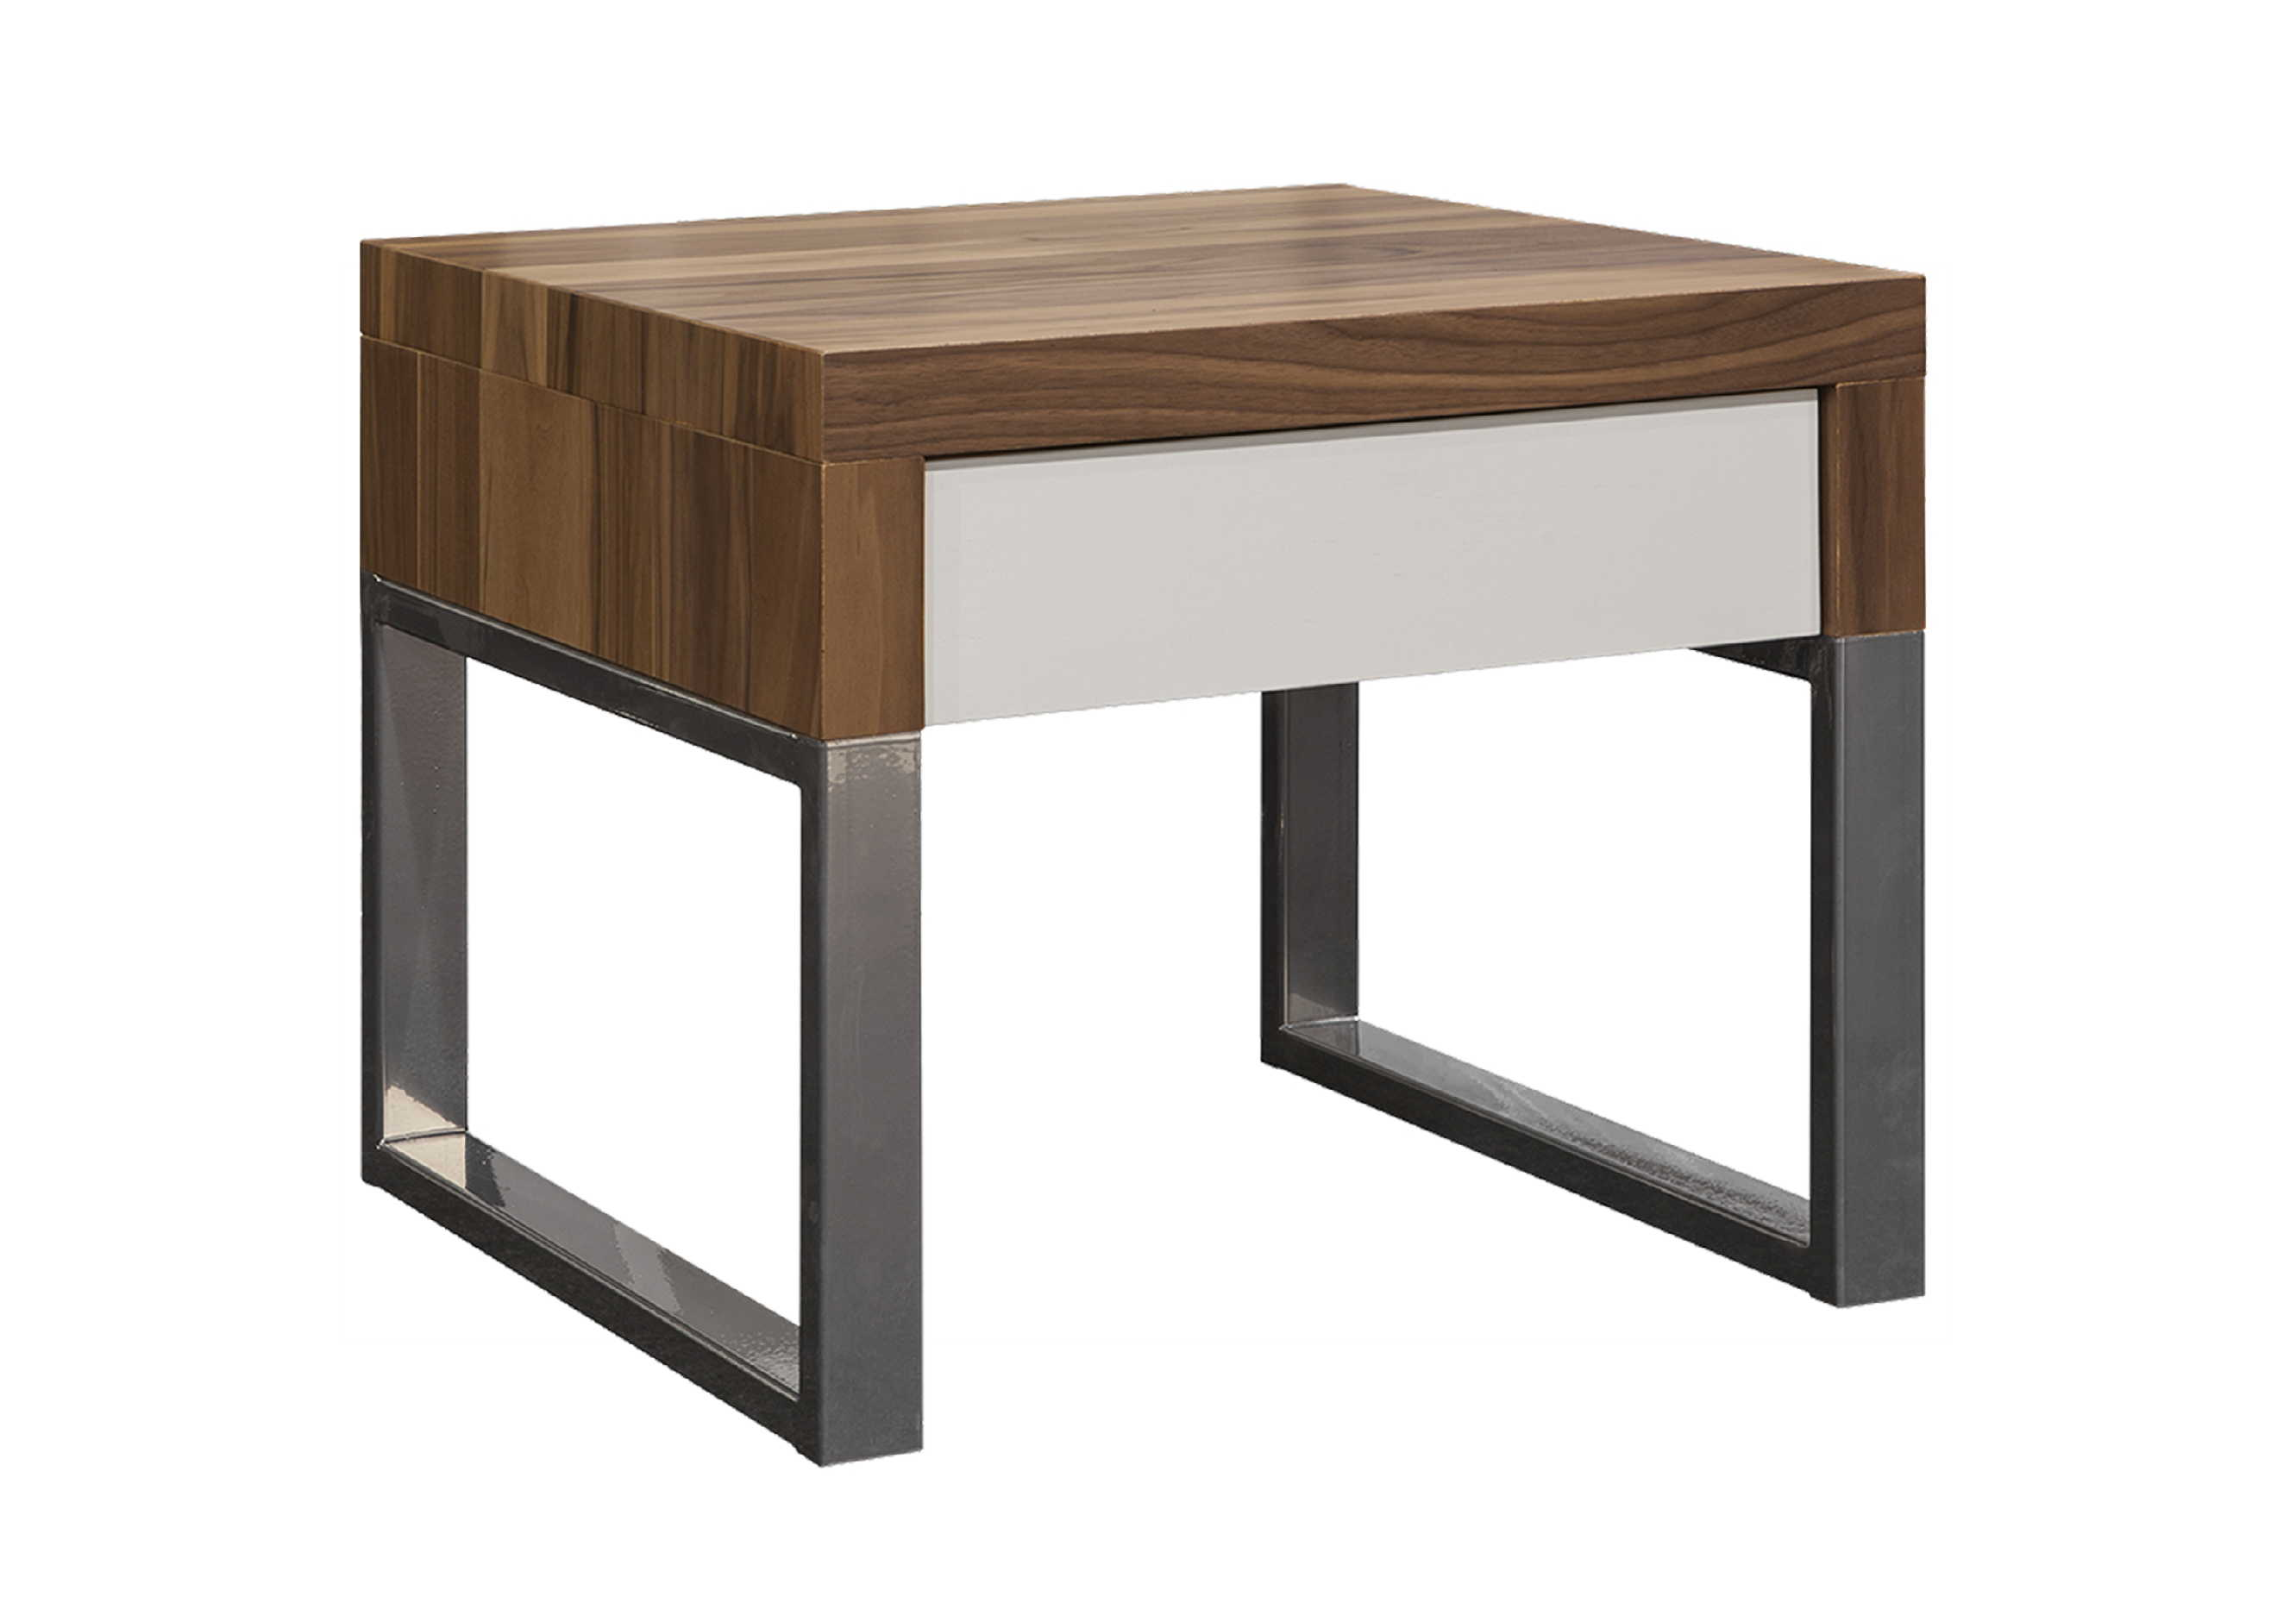 square living room tables furniture end viebois catalog 240tbc side table